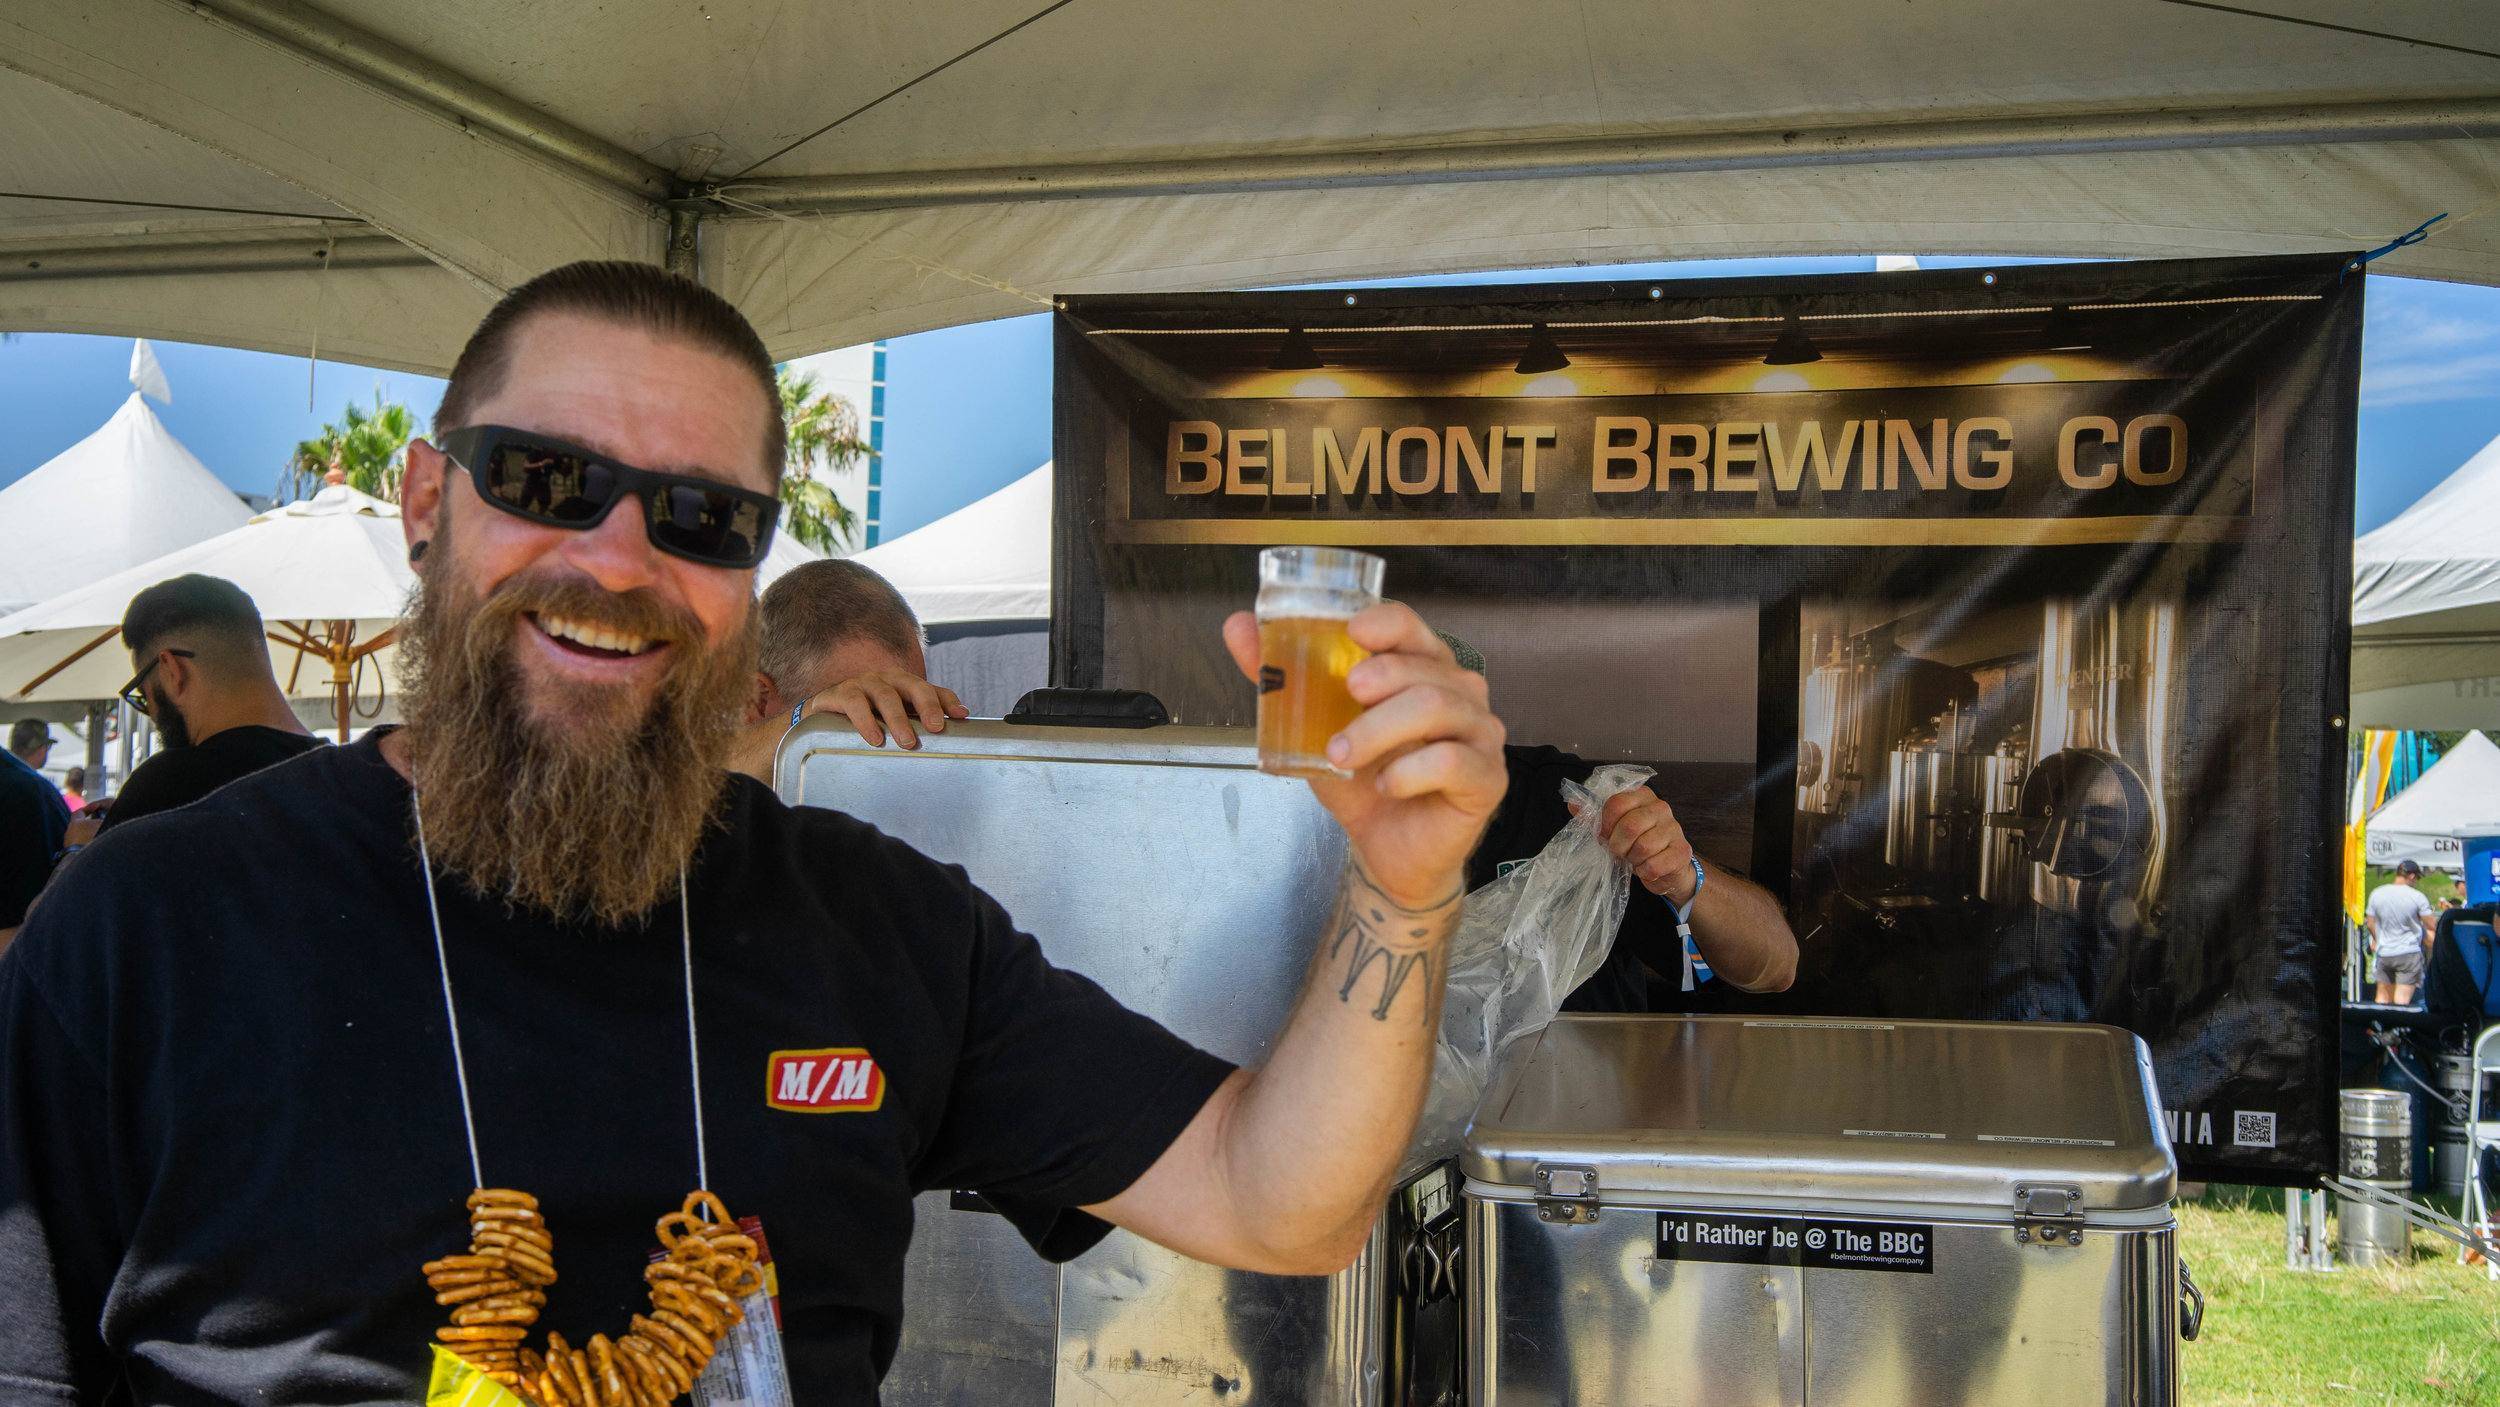 Many of the patrons were very enthusiastic about their favorite breweries. This man proclaimed himself the face of Belmont Brewing Co.